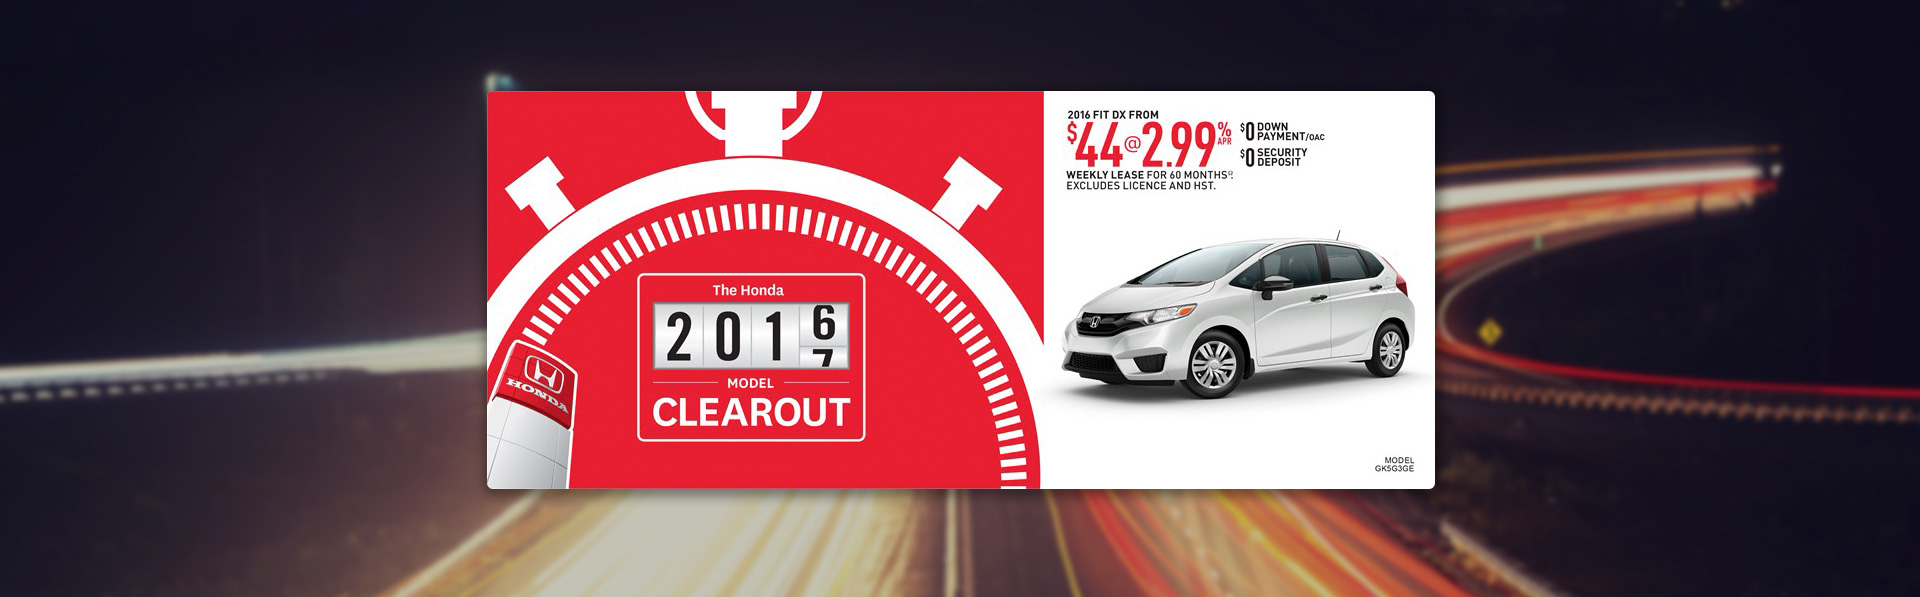 Honda Fit - September Incentive